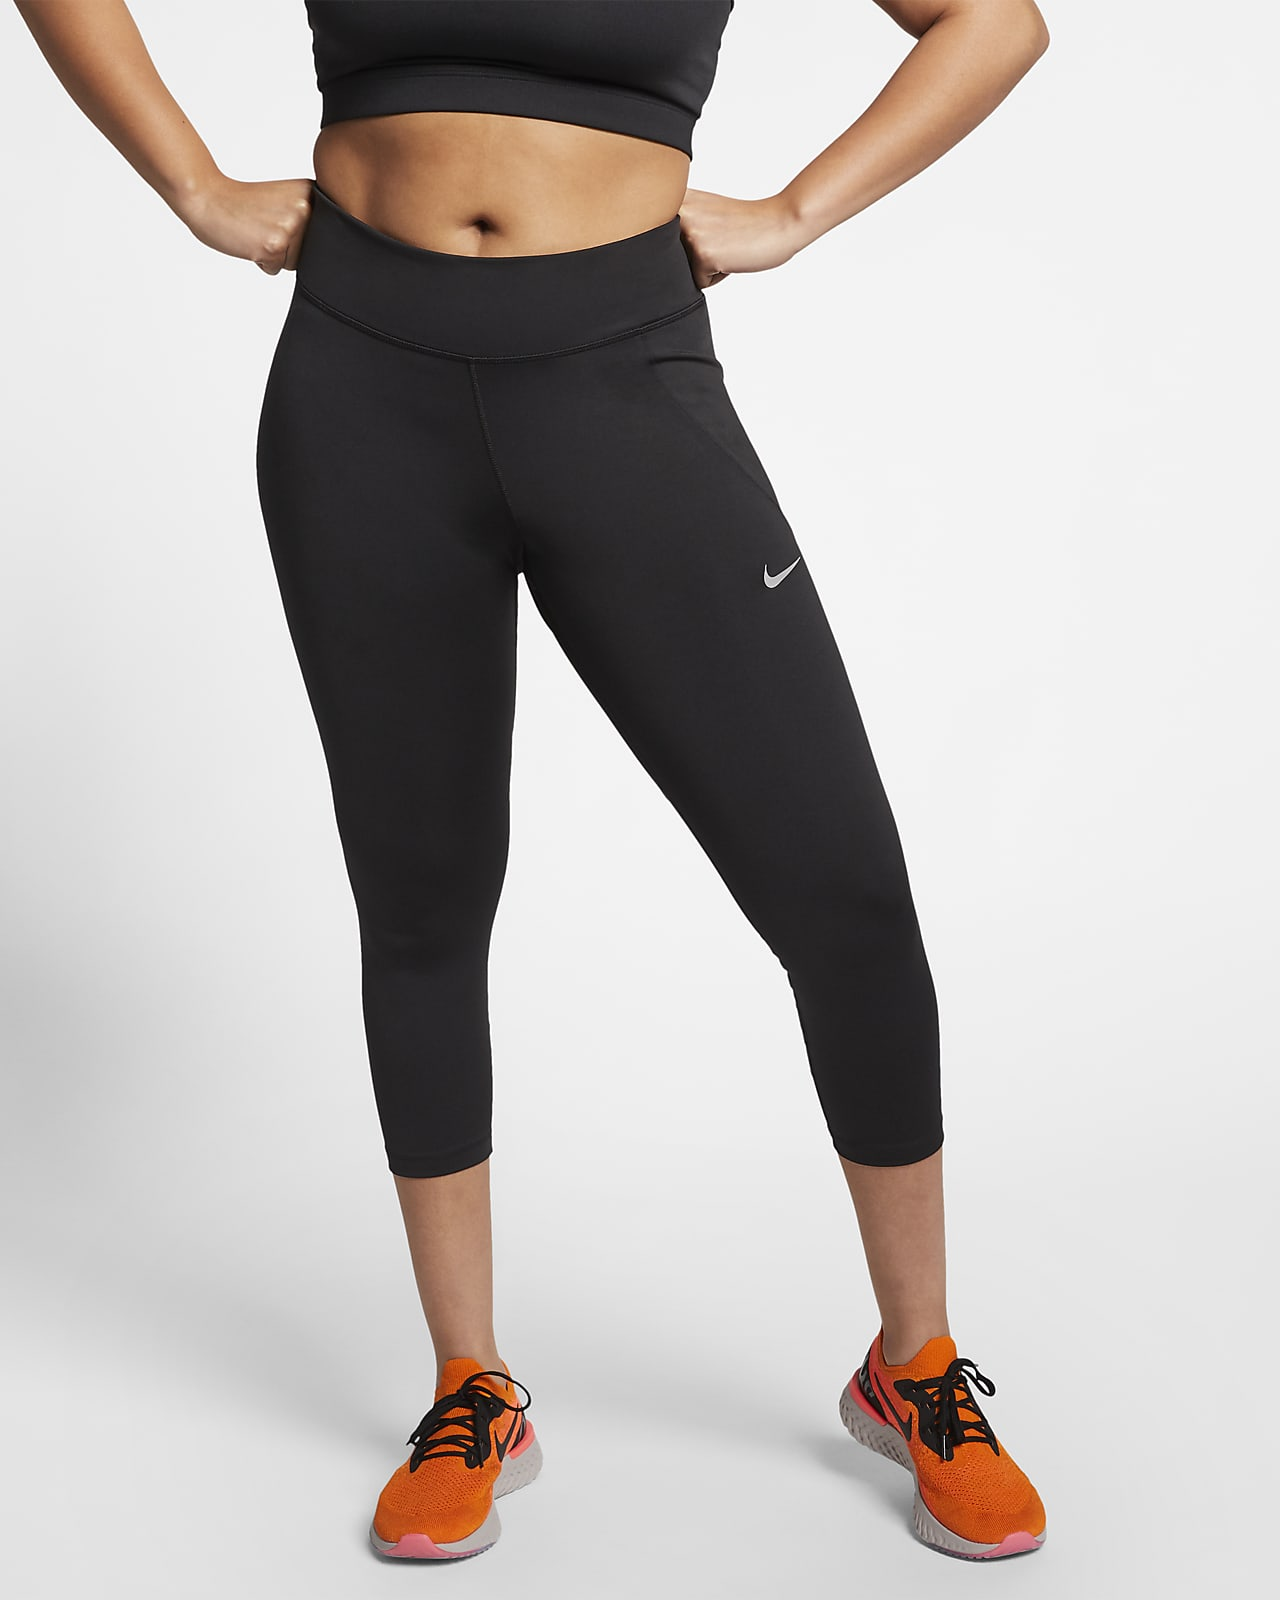 Nike Fast Women's Cropped Running Leggings (Plus size)